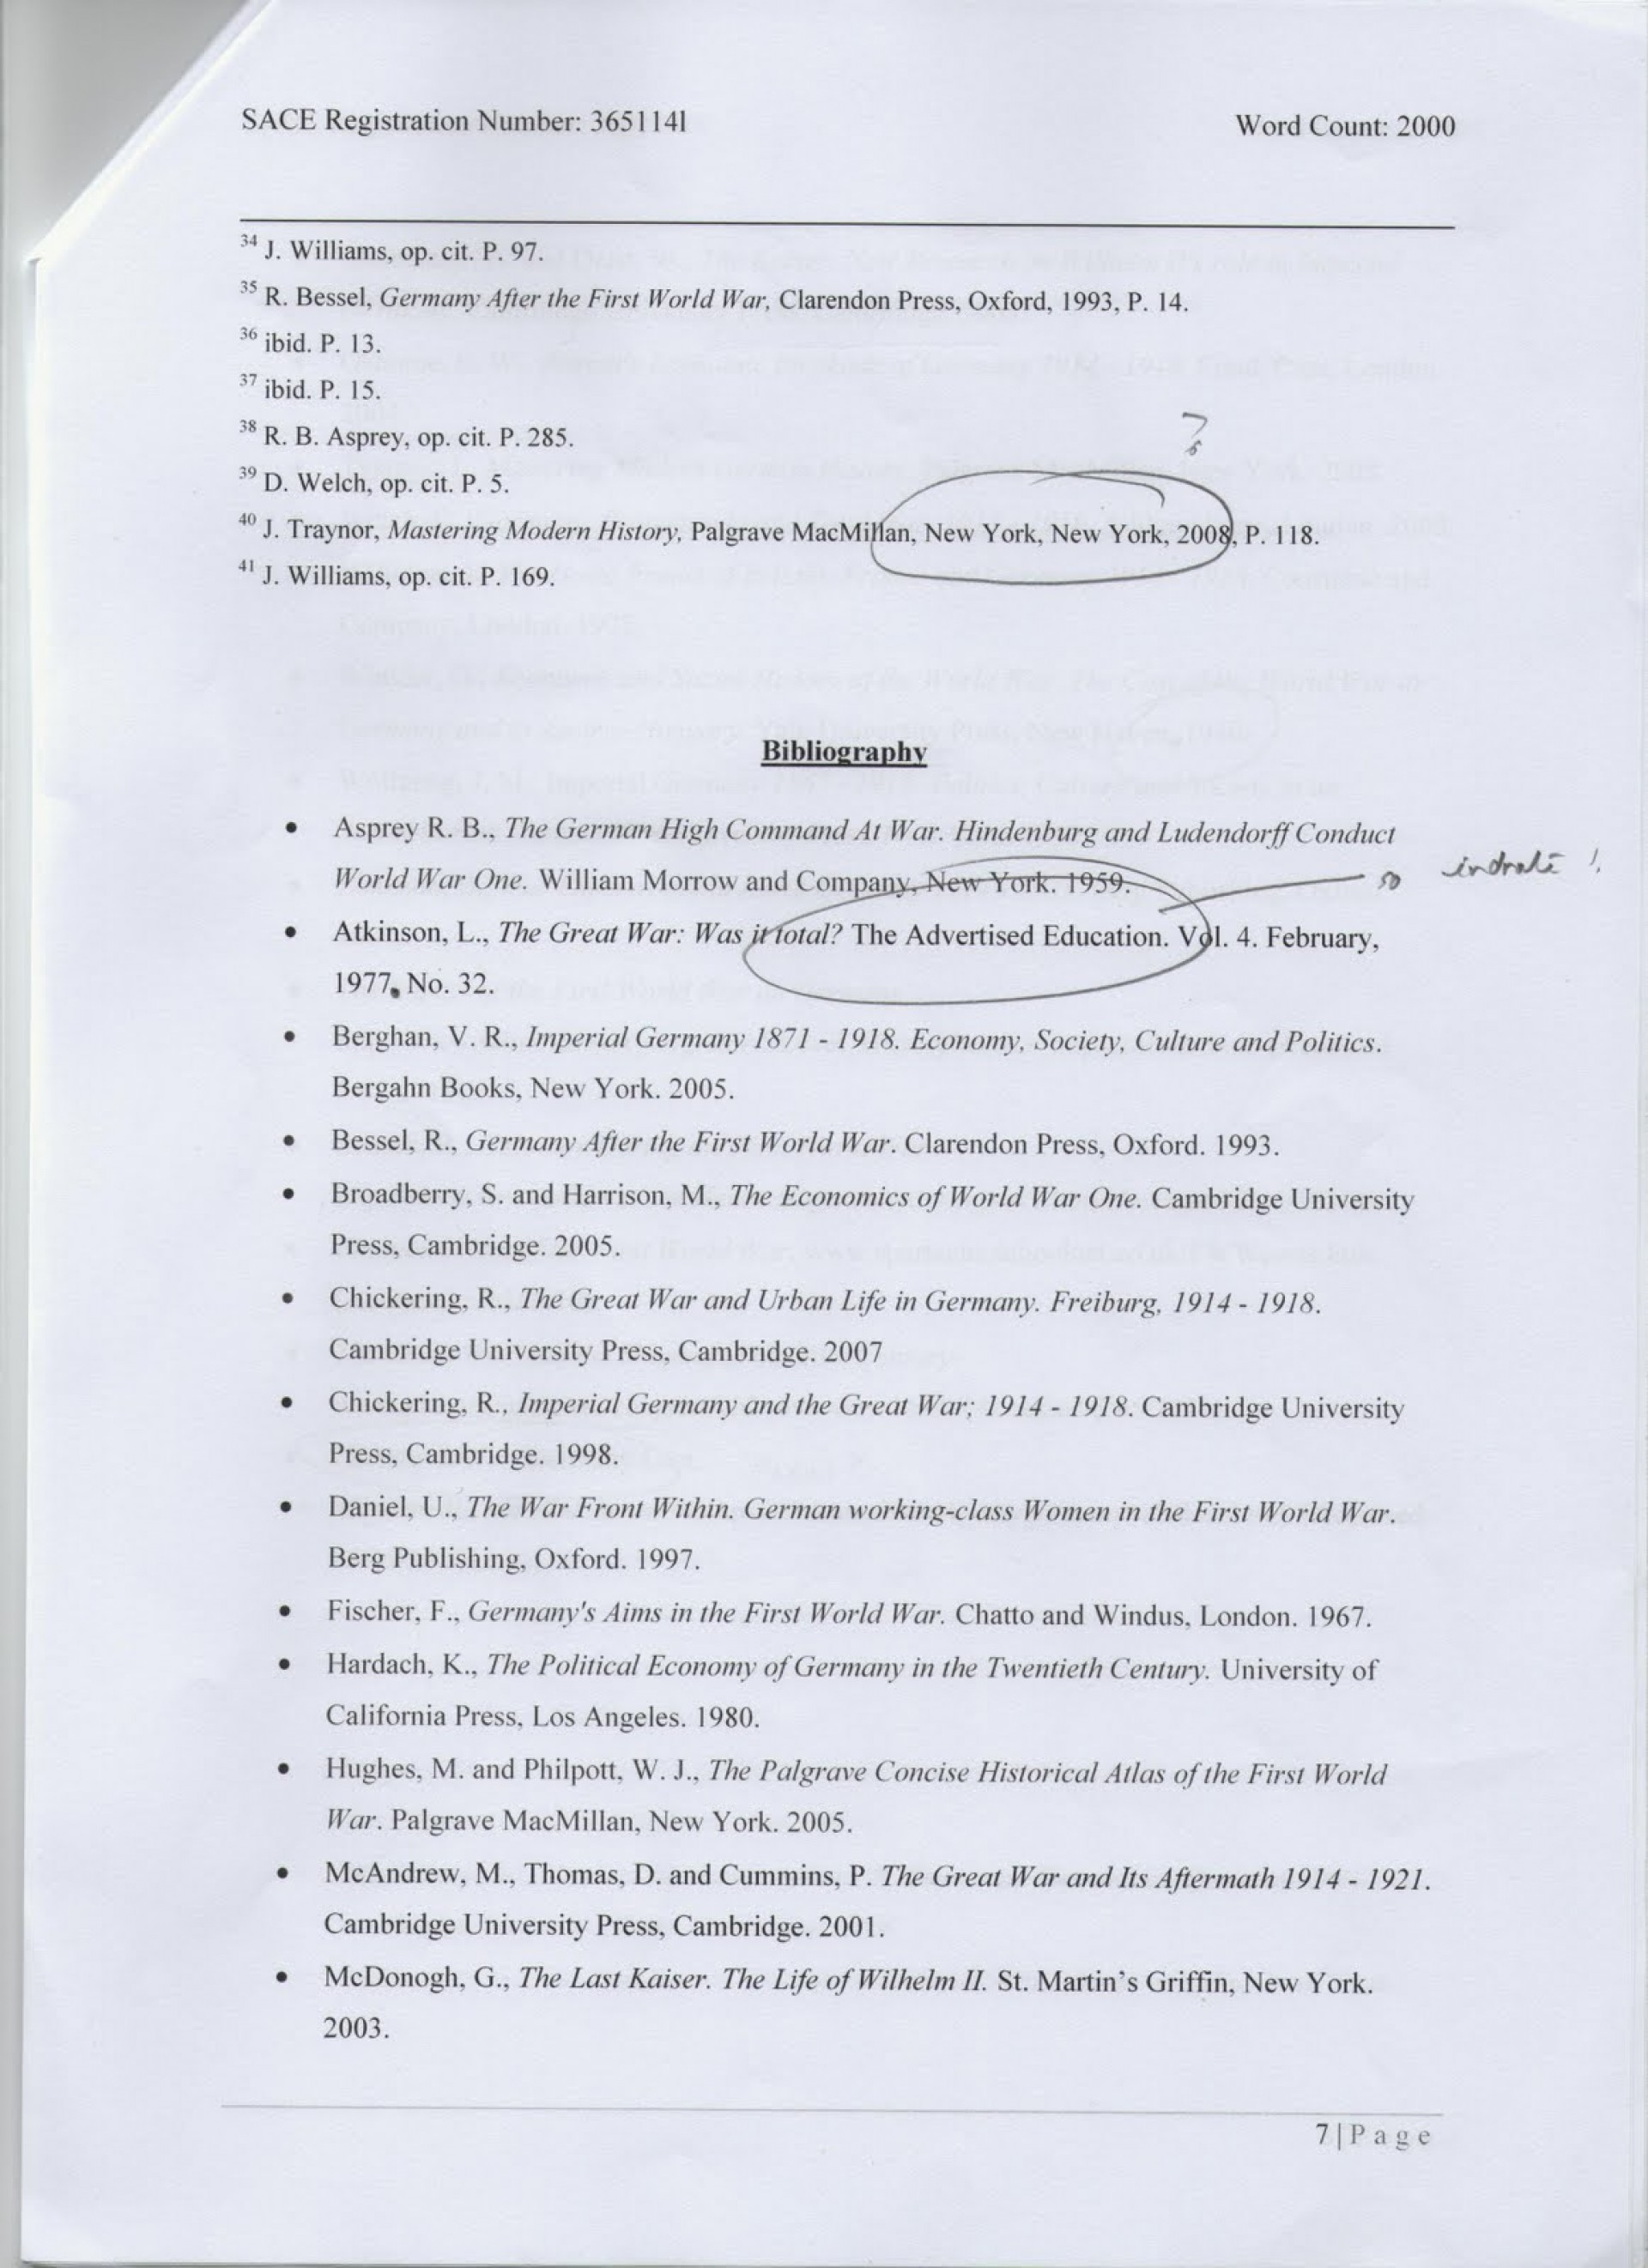 016 Endnotes2bbibliography1 Uchicago Essays Essay Astounding Law That Worked Length Reddit 1920